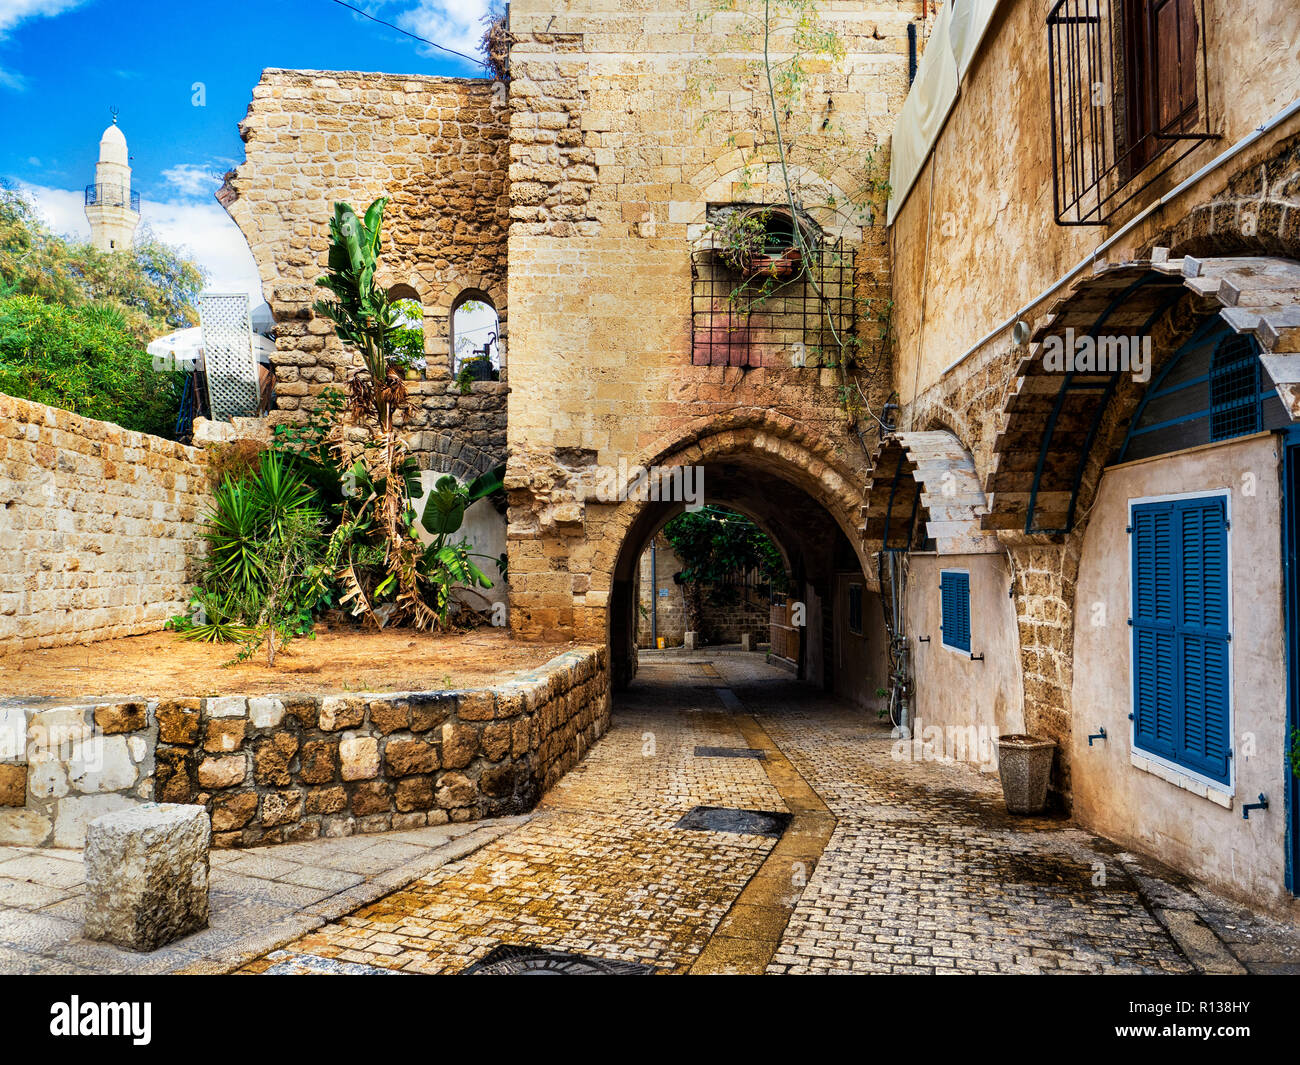 Arched Pathway in Old Jaffa Fort in Tel Aviv, Israel - Stock Image